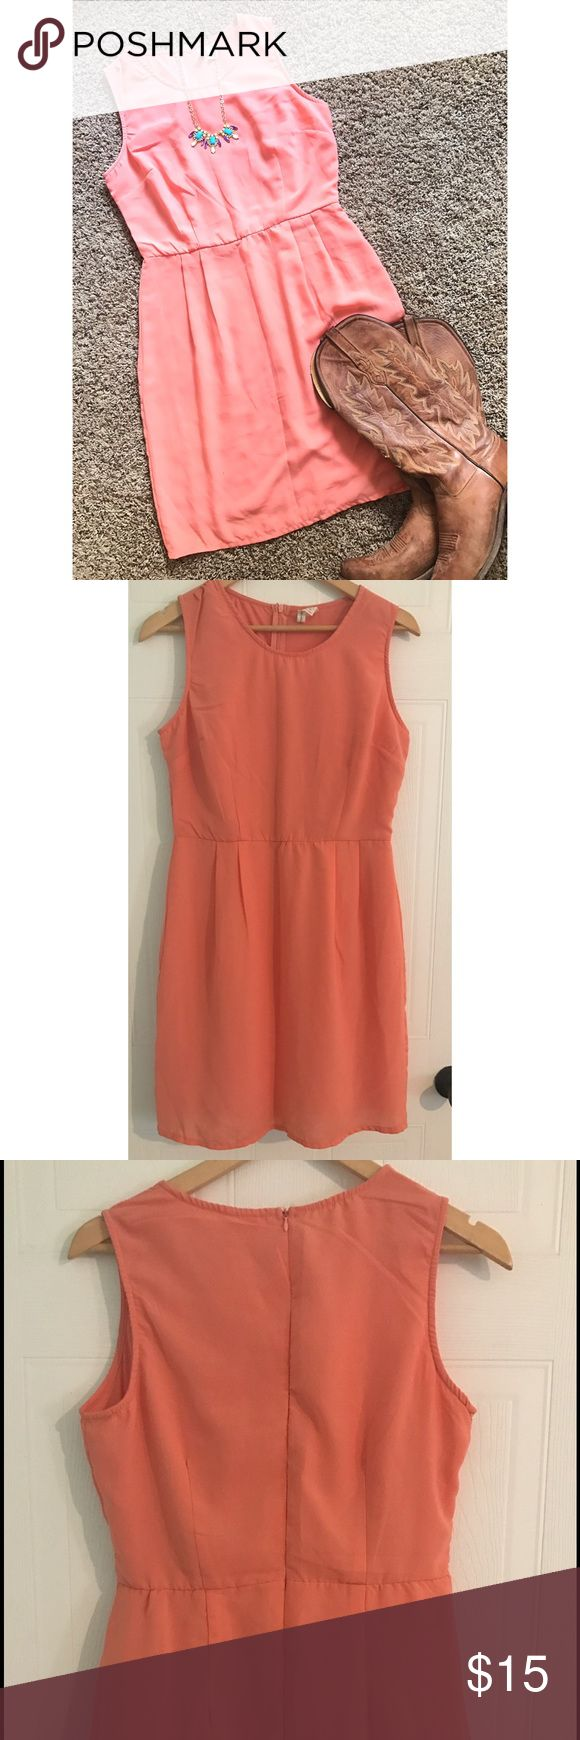 Peachy Coral Sundress Pretty peachy-coral sundress -- can be easily dressed up or dressed down.  Fabric is sheer, but fully lined.  Zips in the back.  Sizing is Juniors Large, and runs small; the equivalent of a Misses Small.  Hits above the knee. Dresses